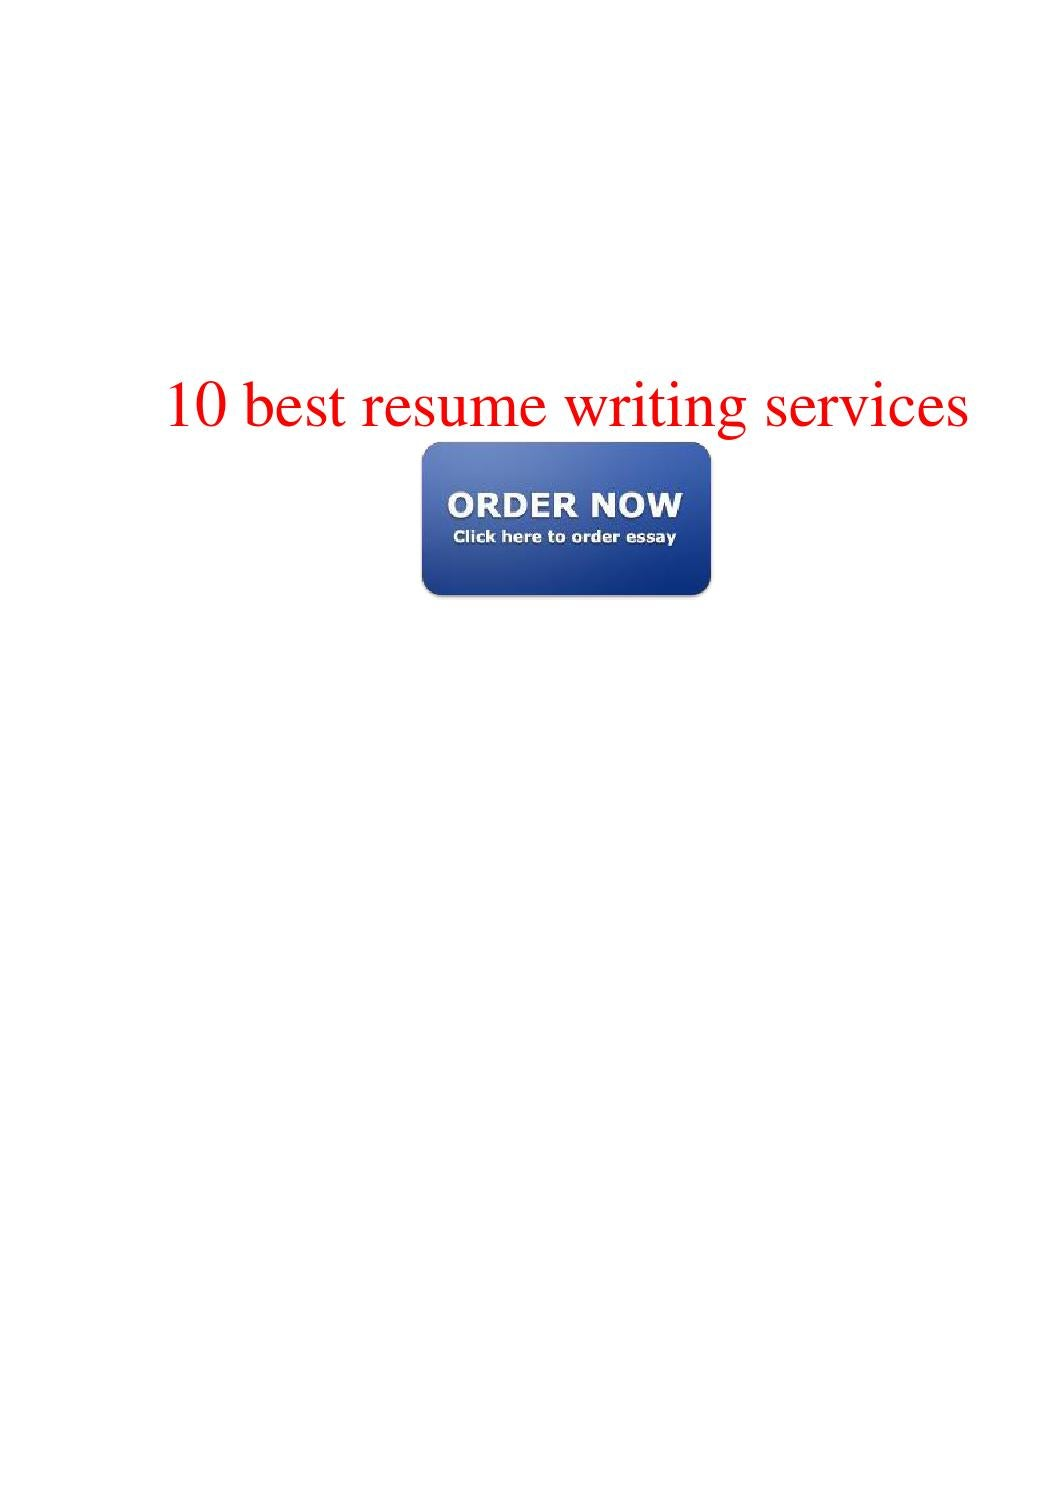 resume professional writers reviews resume writing companies resume professional writers reviews resume writing companies - Resume Professional Writers Reviews